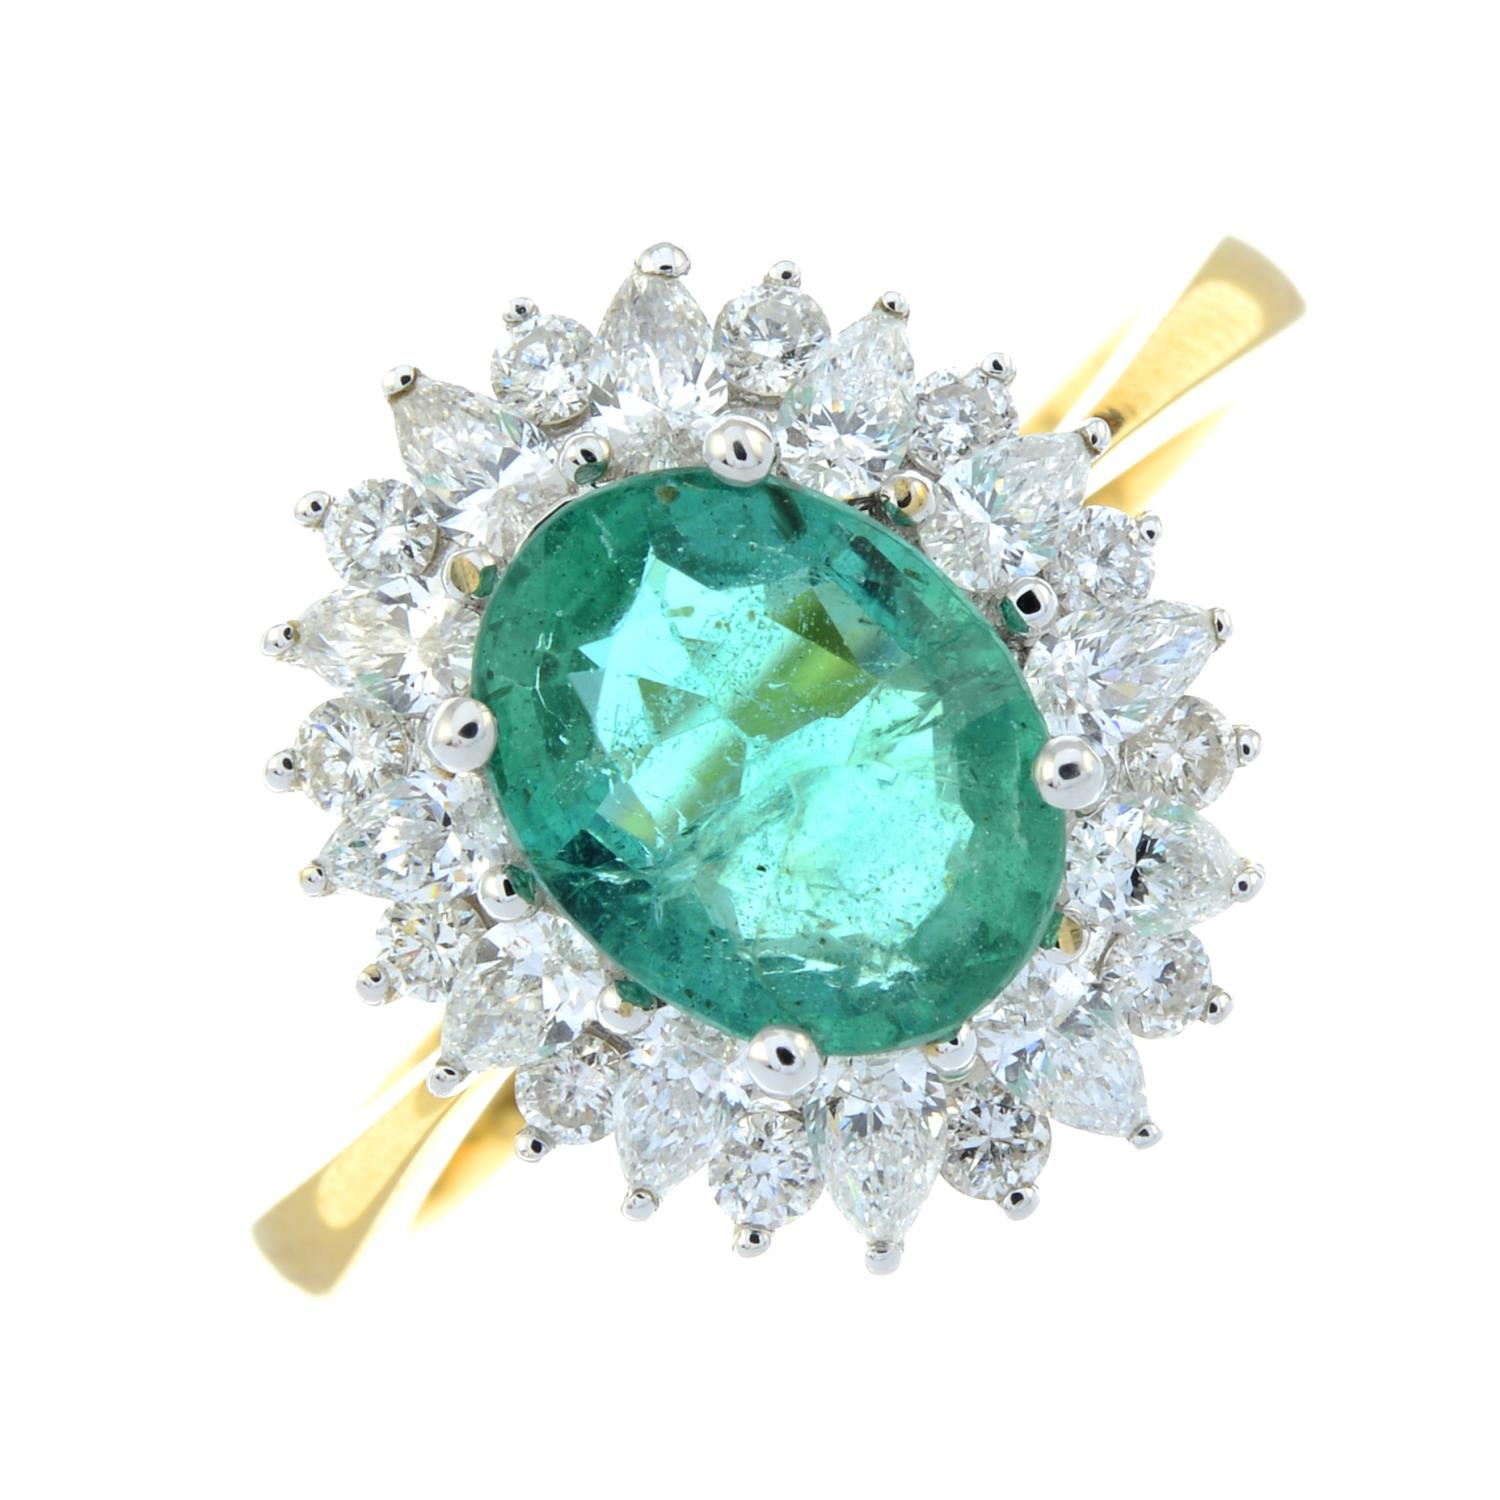 An 18ct gold emerald ring, - Image 2 of 6